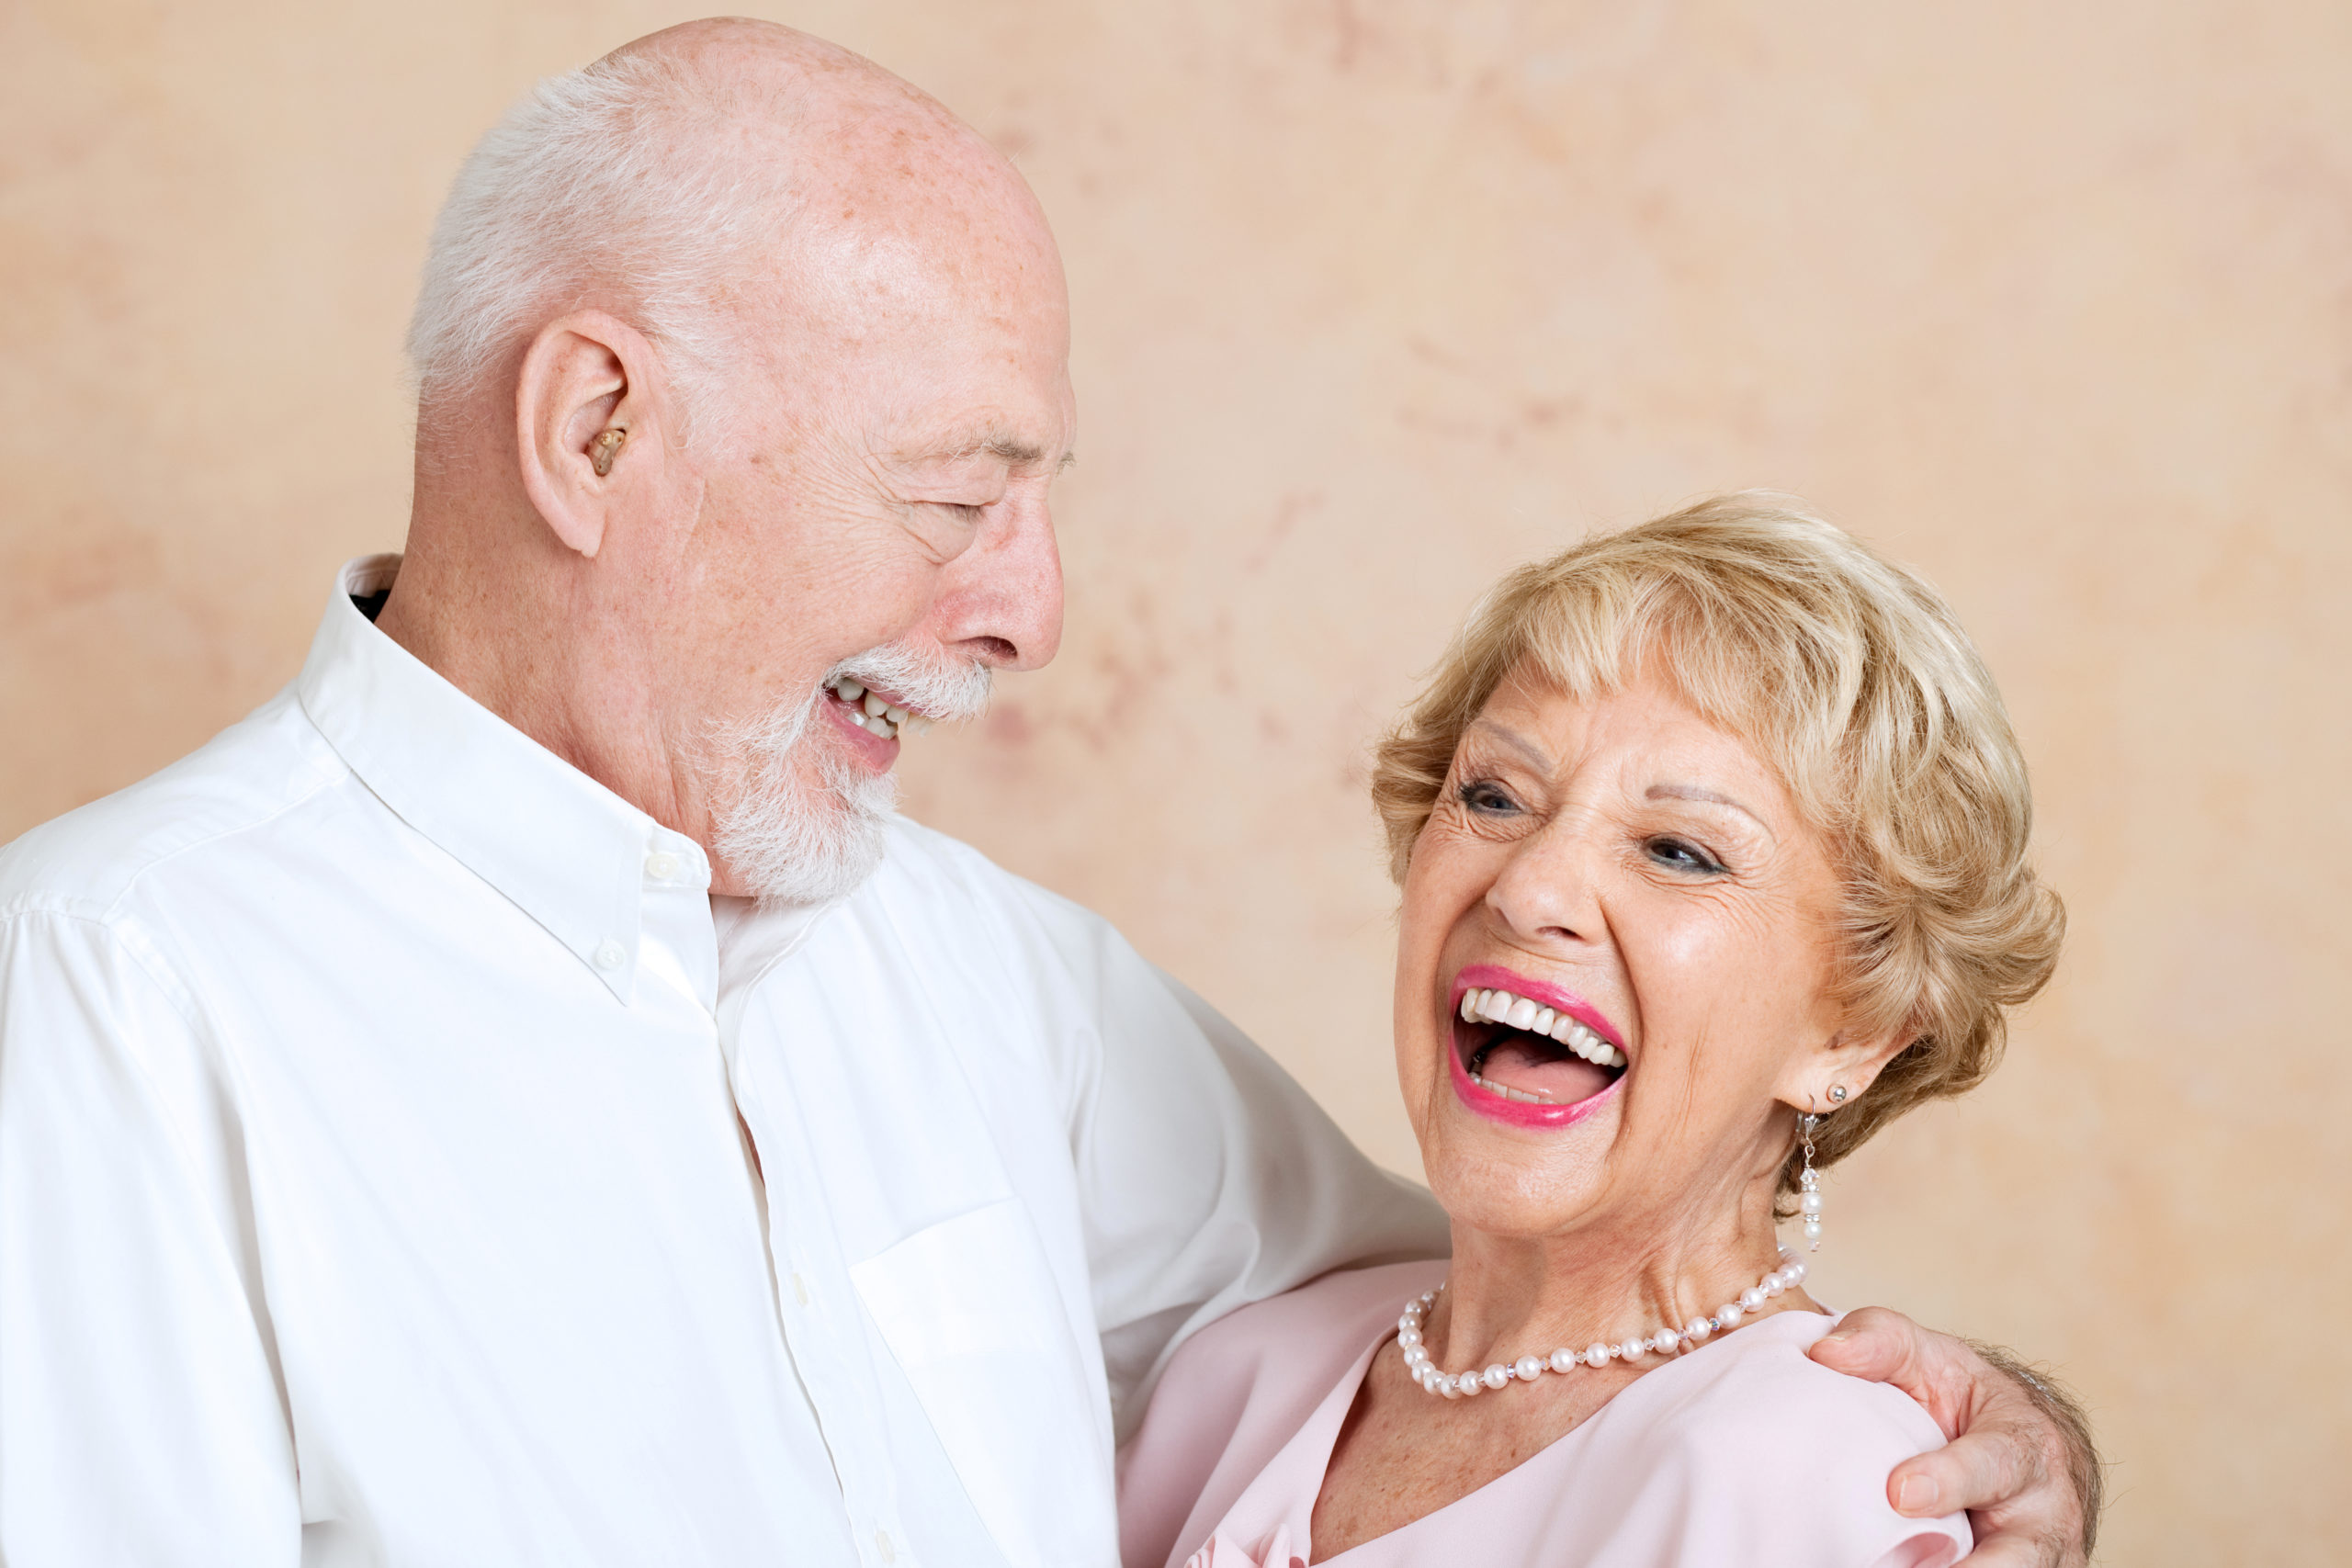 Suction Fit Dentures - What Are They? kensington court clinic